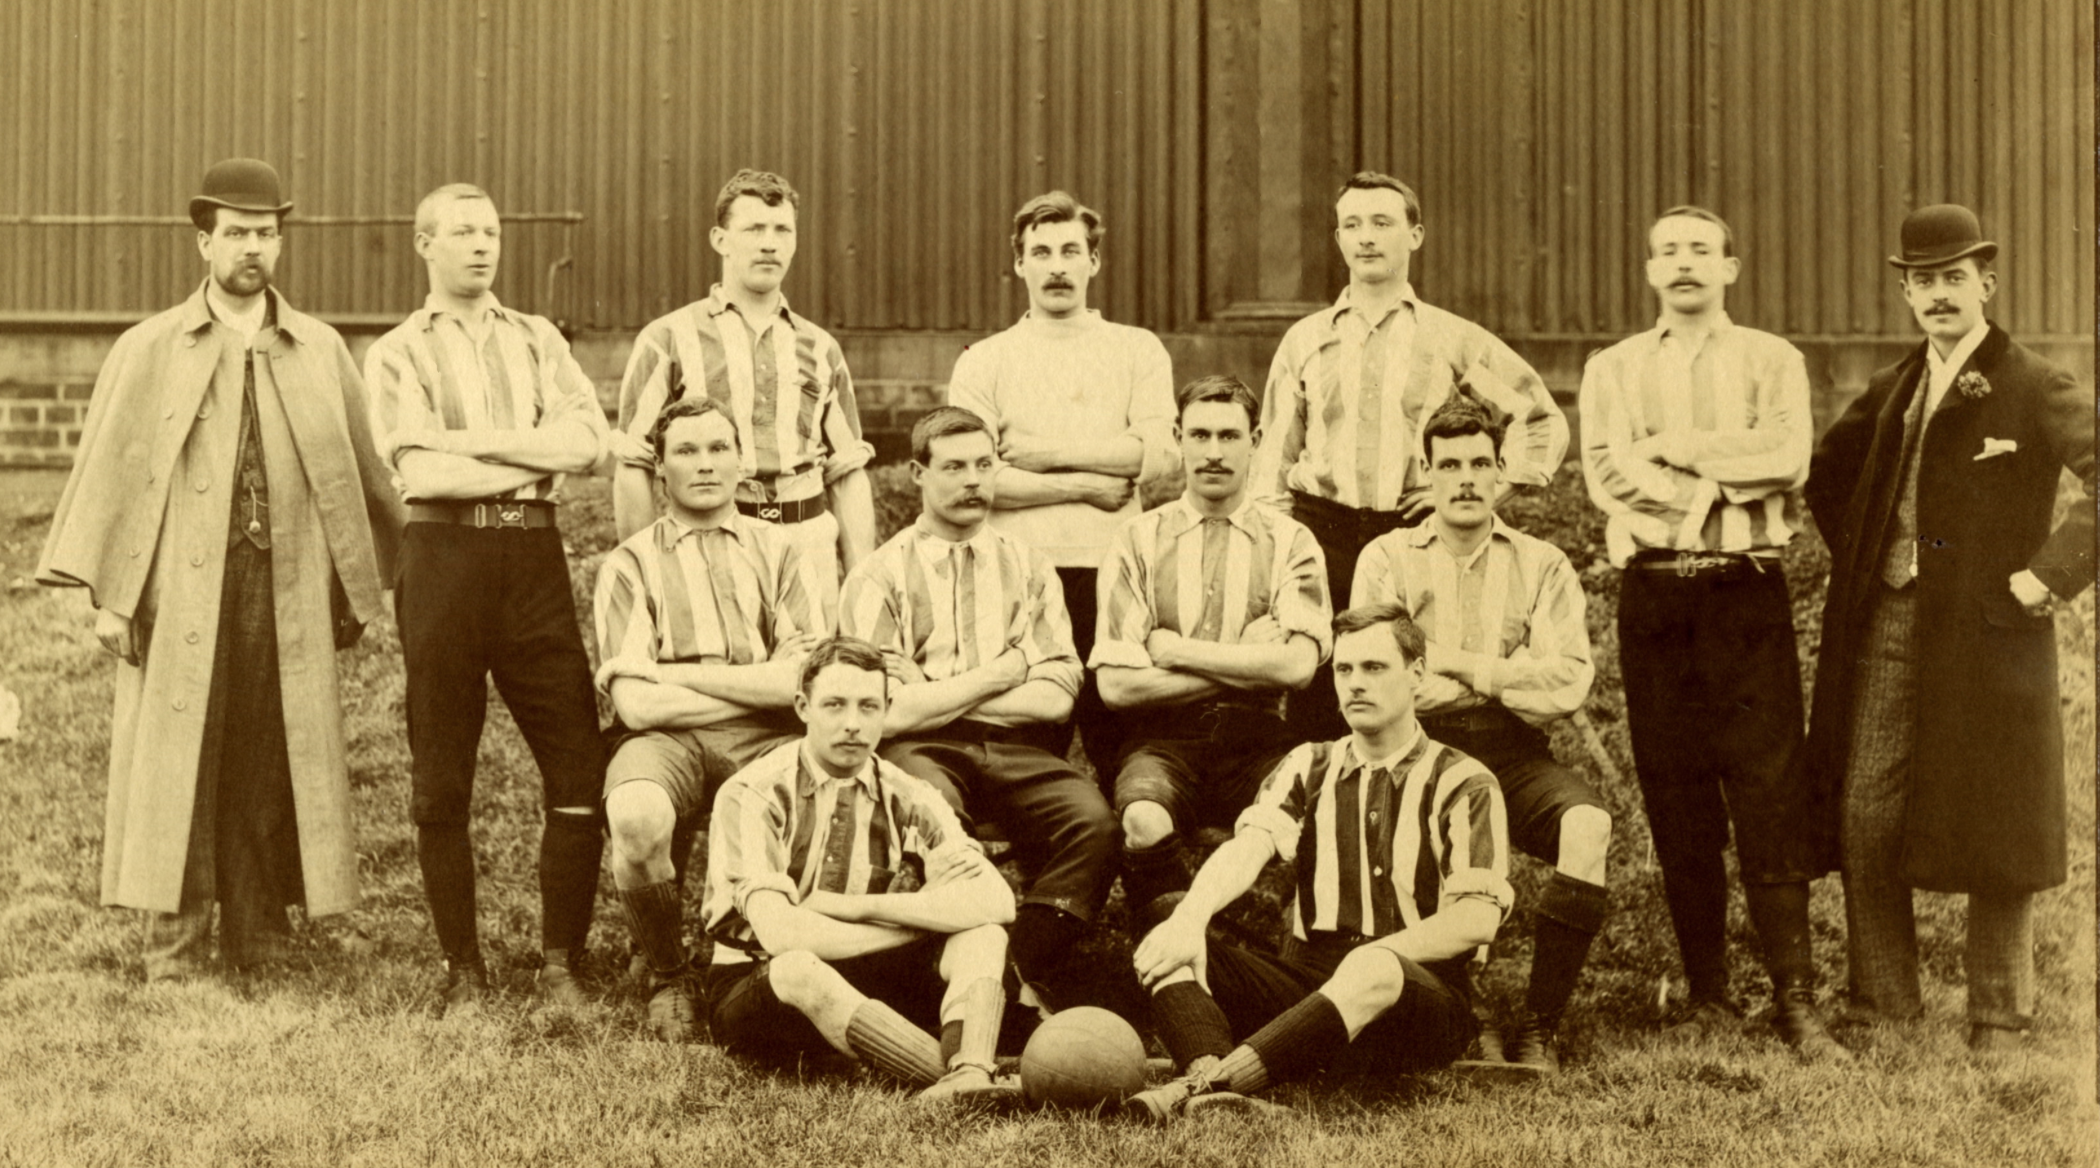 Unknown team 1890's